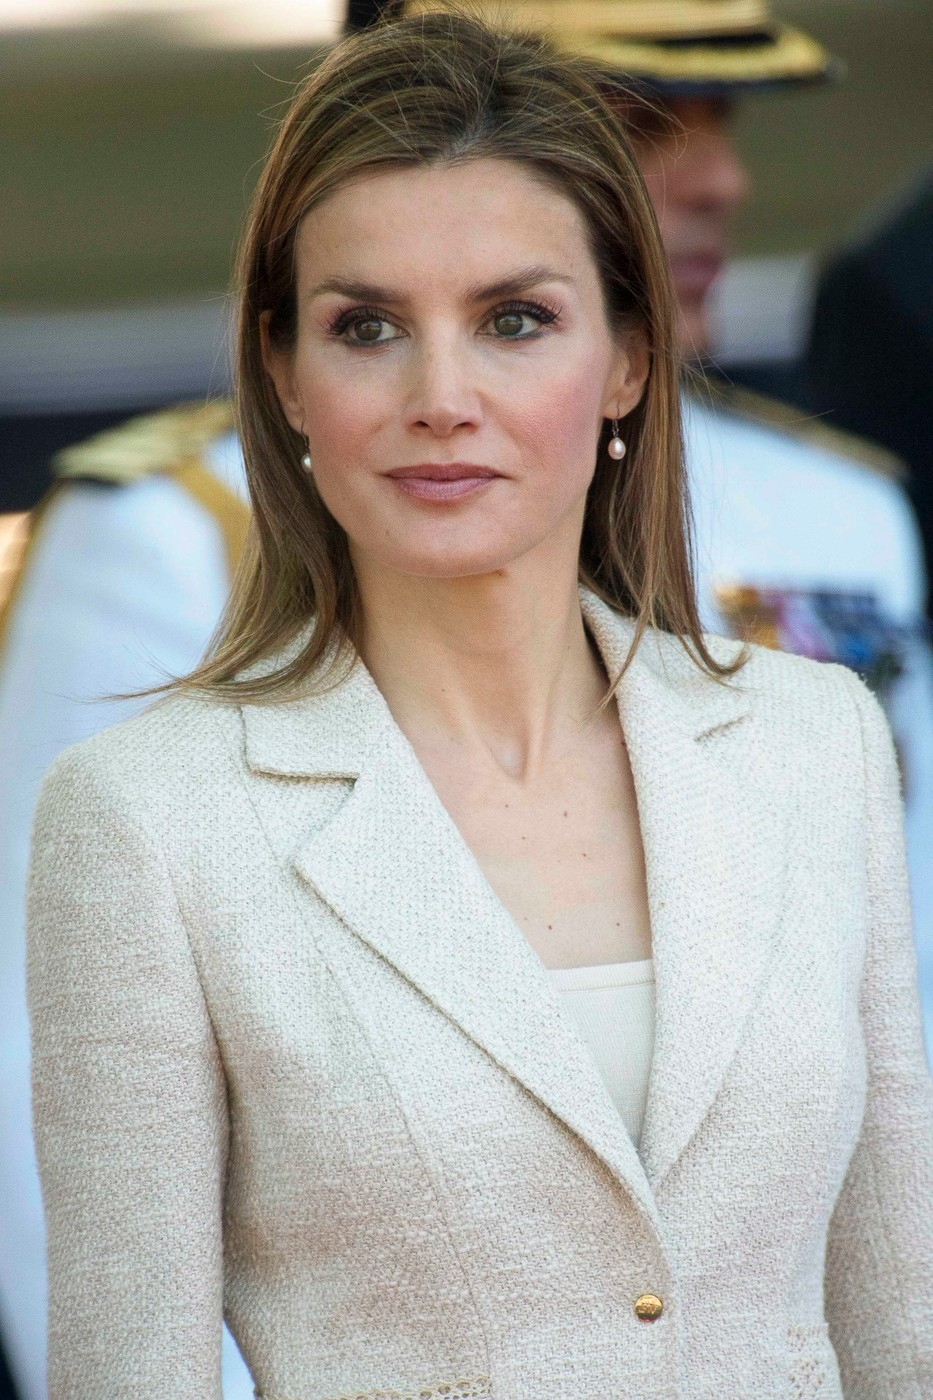 Spanish Royal Family in the Armed Forces Day